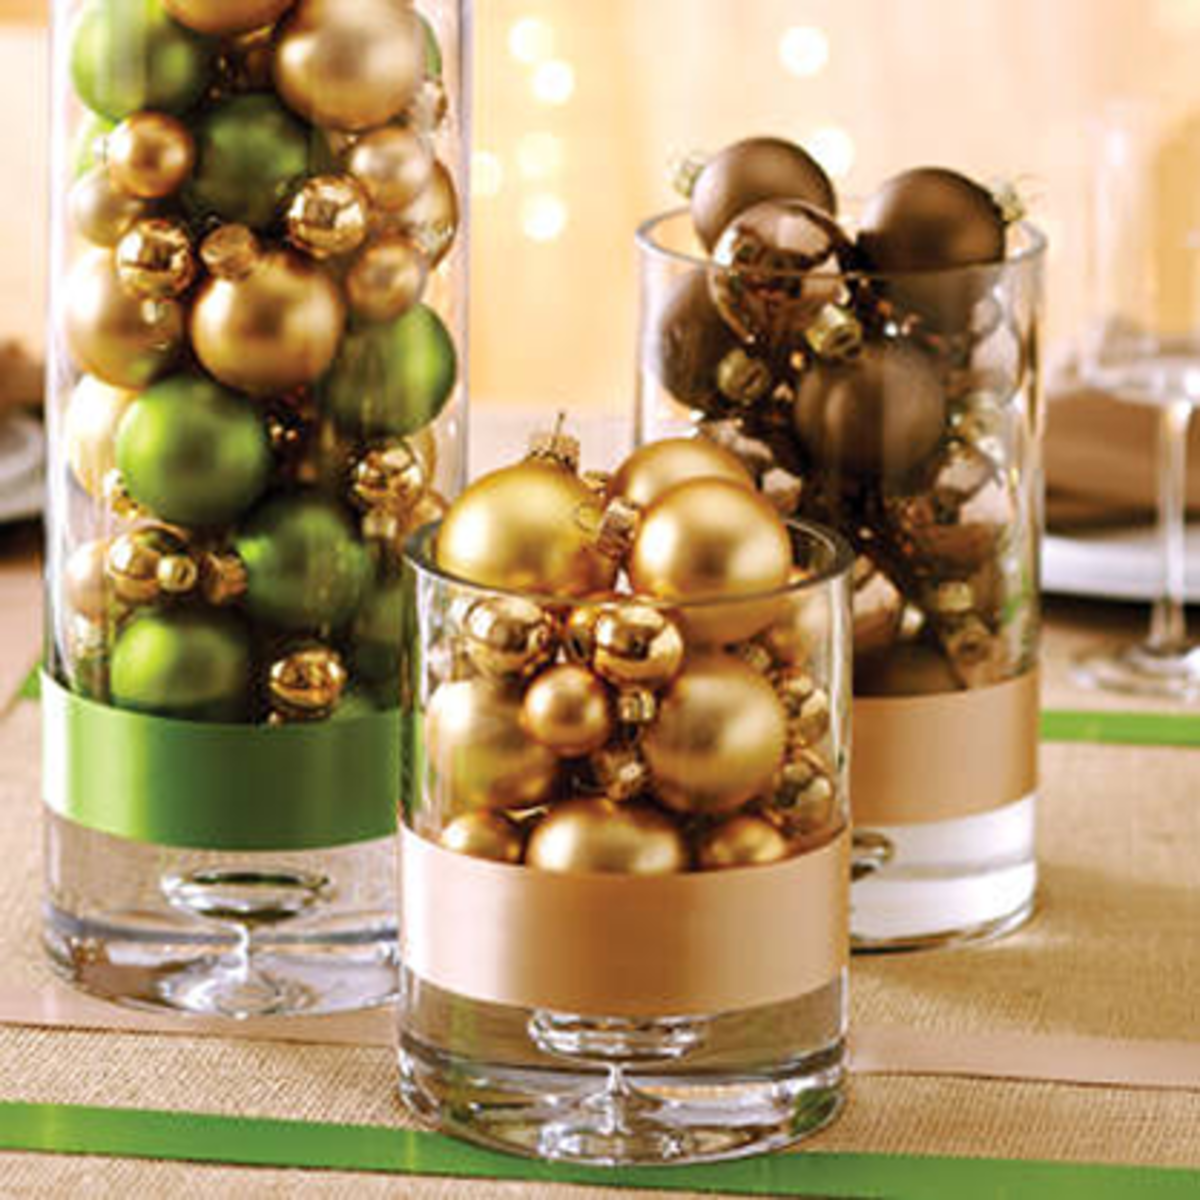 Simply elegant to add sparkle to your most festive table!